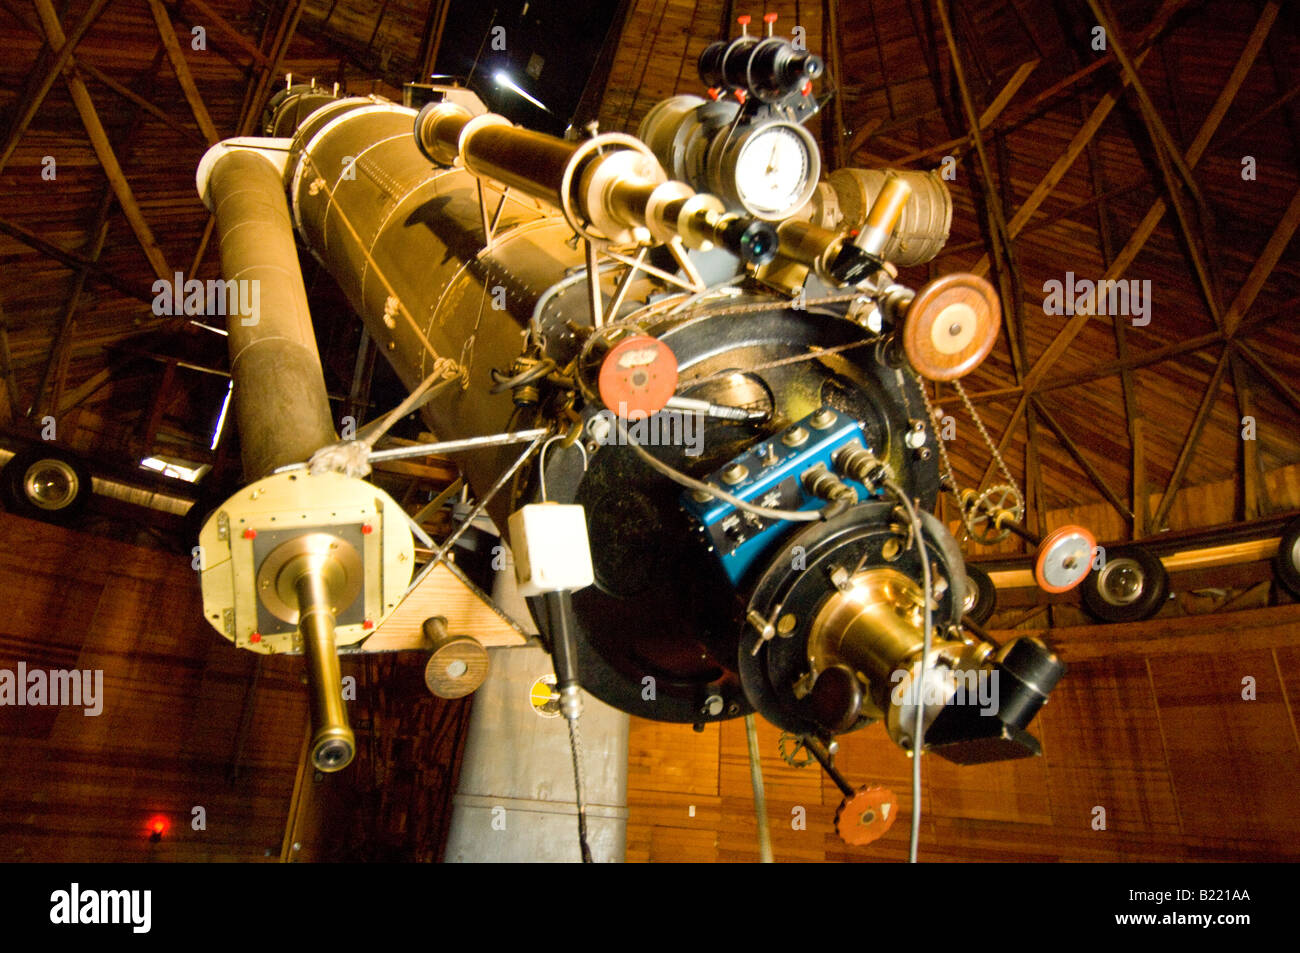 The refracting telescope in the Pluto Dome at the Lowell Observatory where Clyde Tombaugh discovered Pluto. - Stock Image